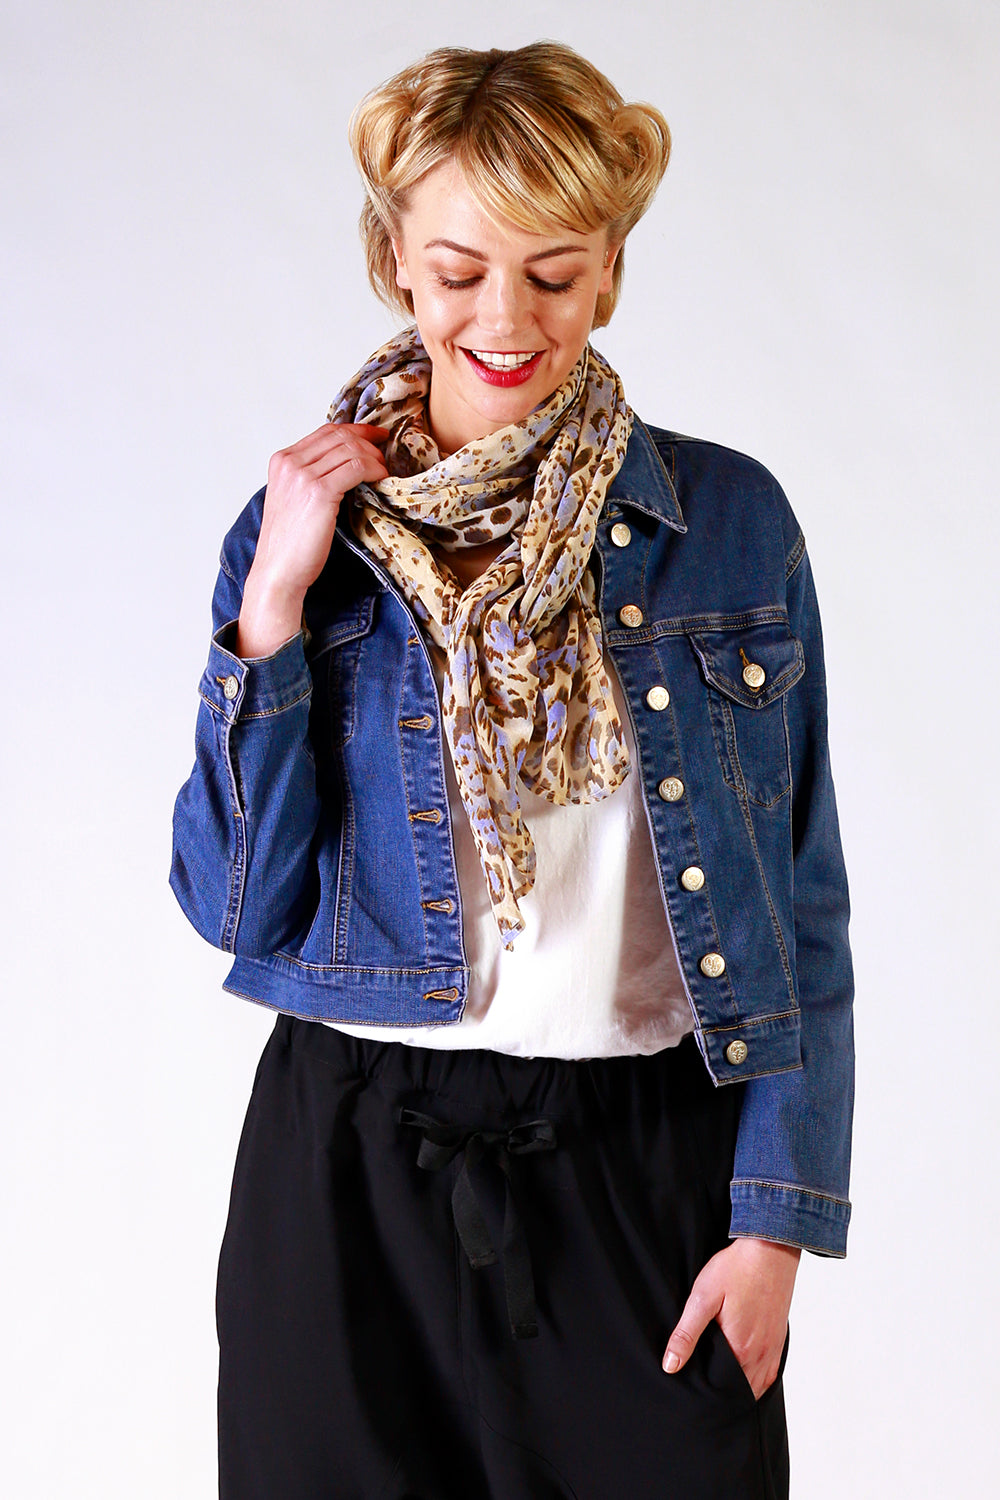 Lana Louise Scarf | Leopard Print Scarf | Designer Fashion Accessories | Scarves | Annah Stretton